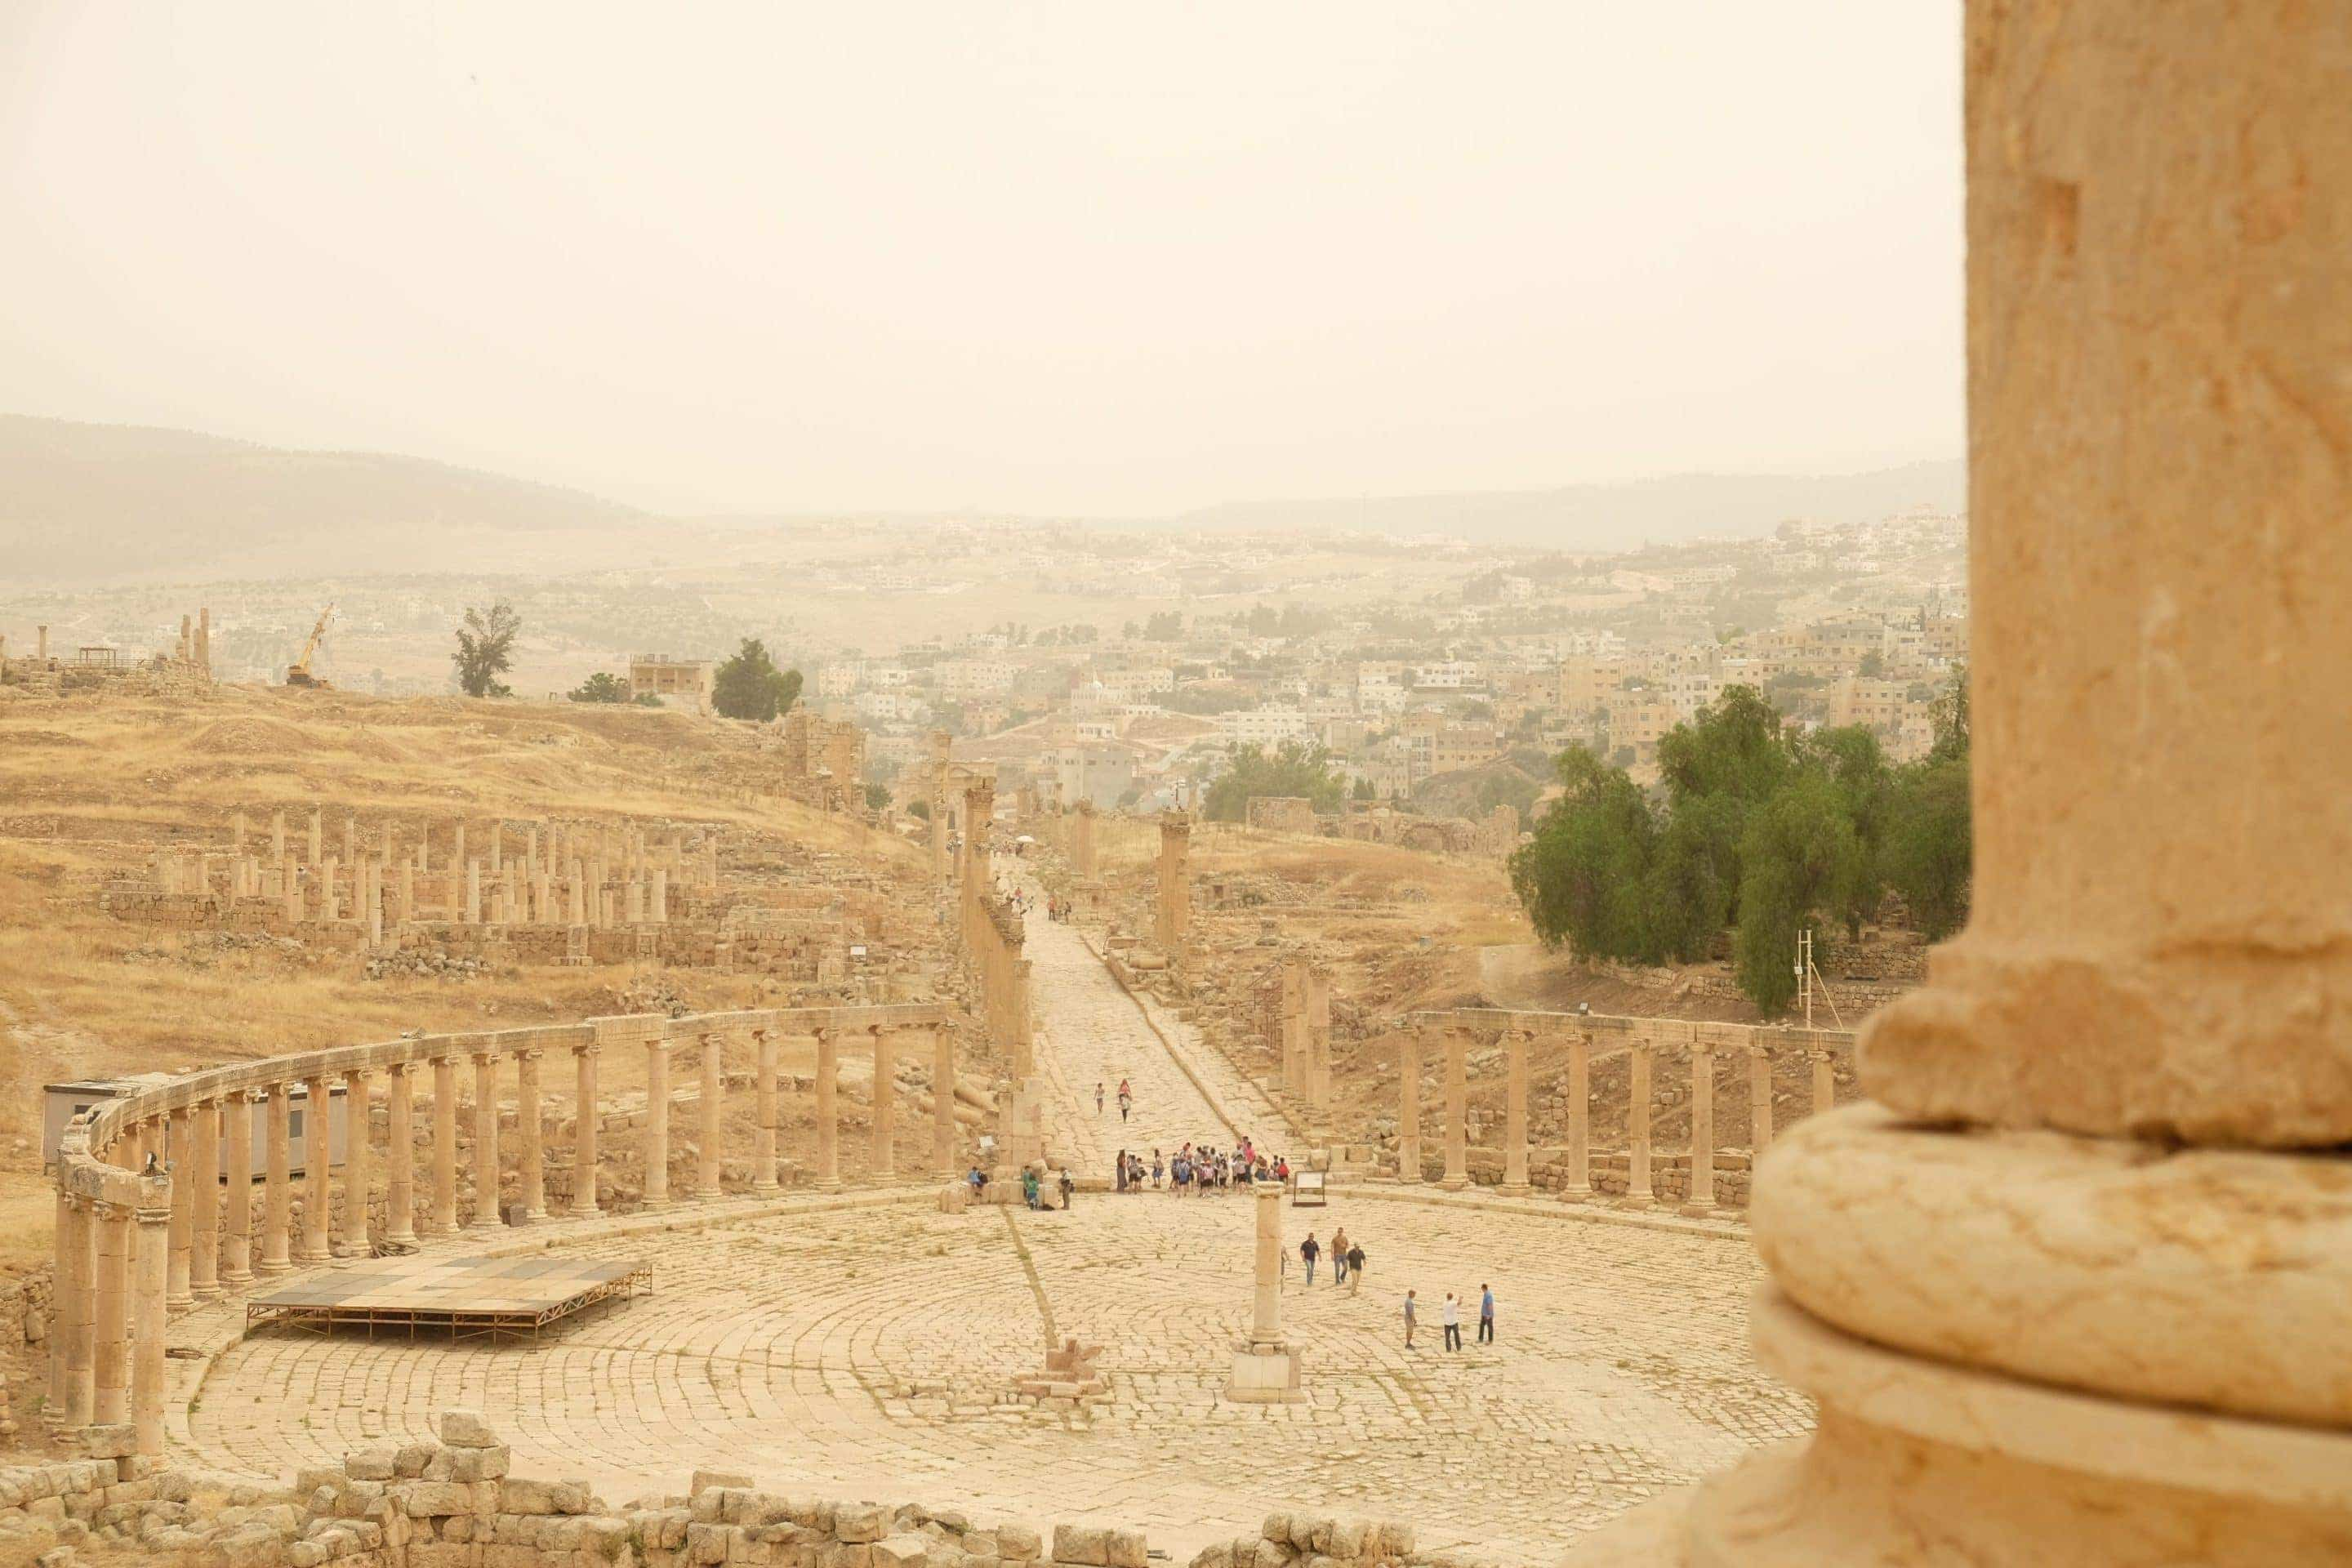 View of the Oval Plaza. Jerash is unique - not to many oval Greco-Roman plaza's out there in the world. Photo: Genevieve Hathaway Photography